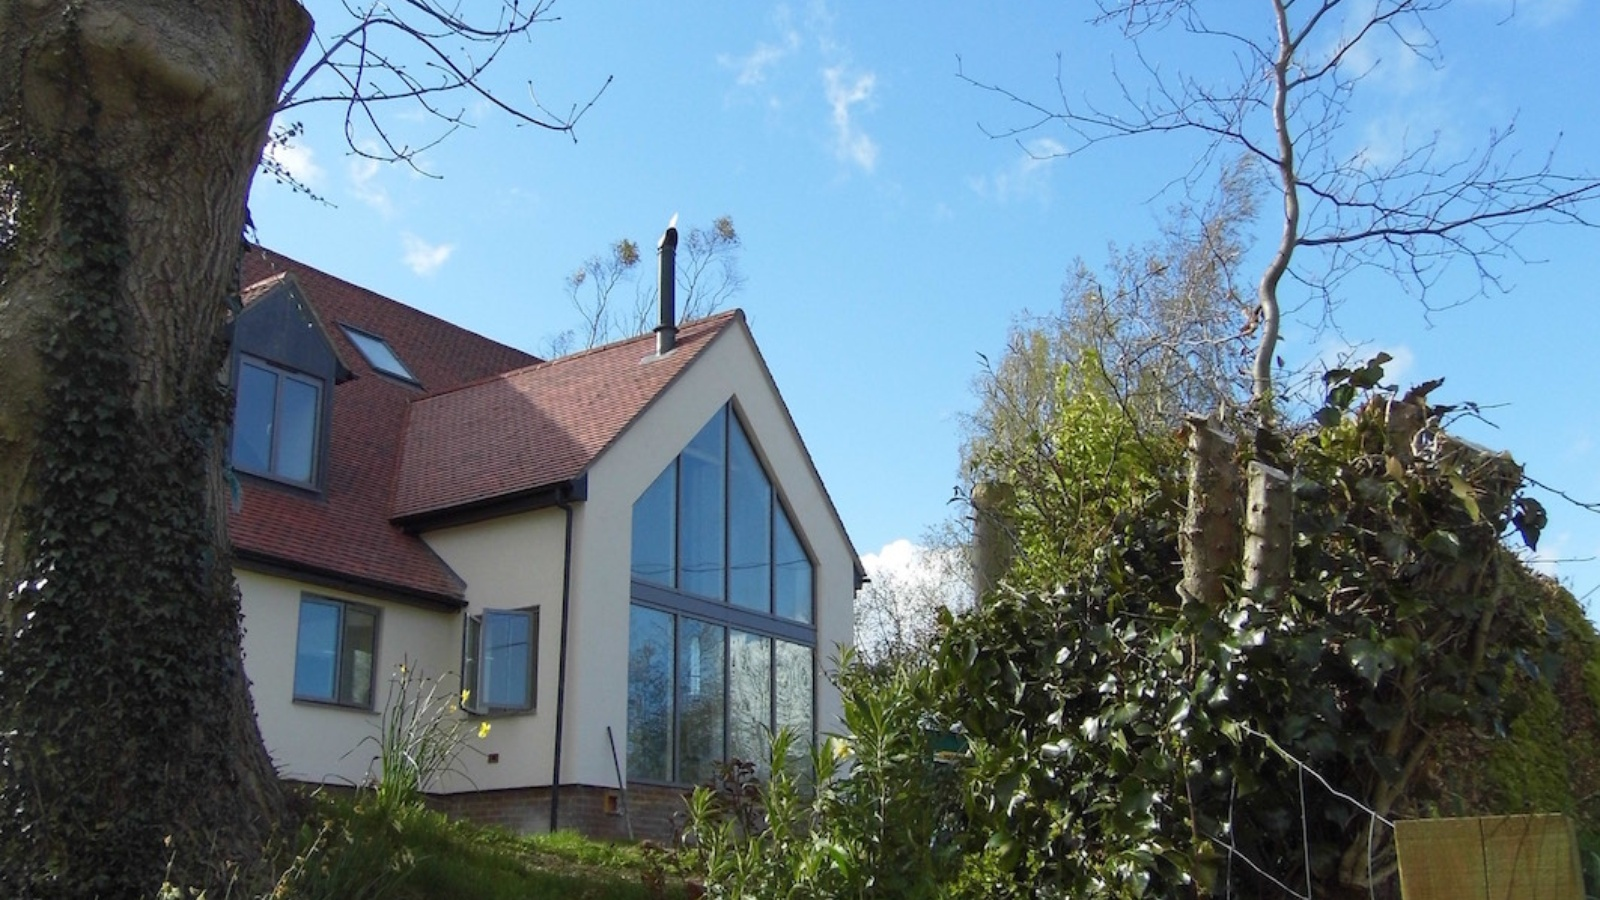 Flue through a roof to a new build property in Radnage, Buckinghamshire.